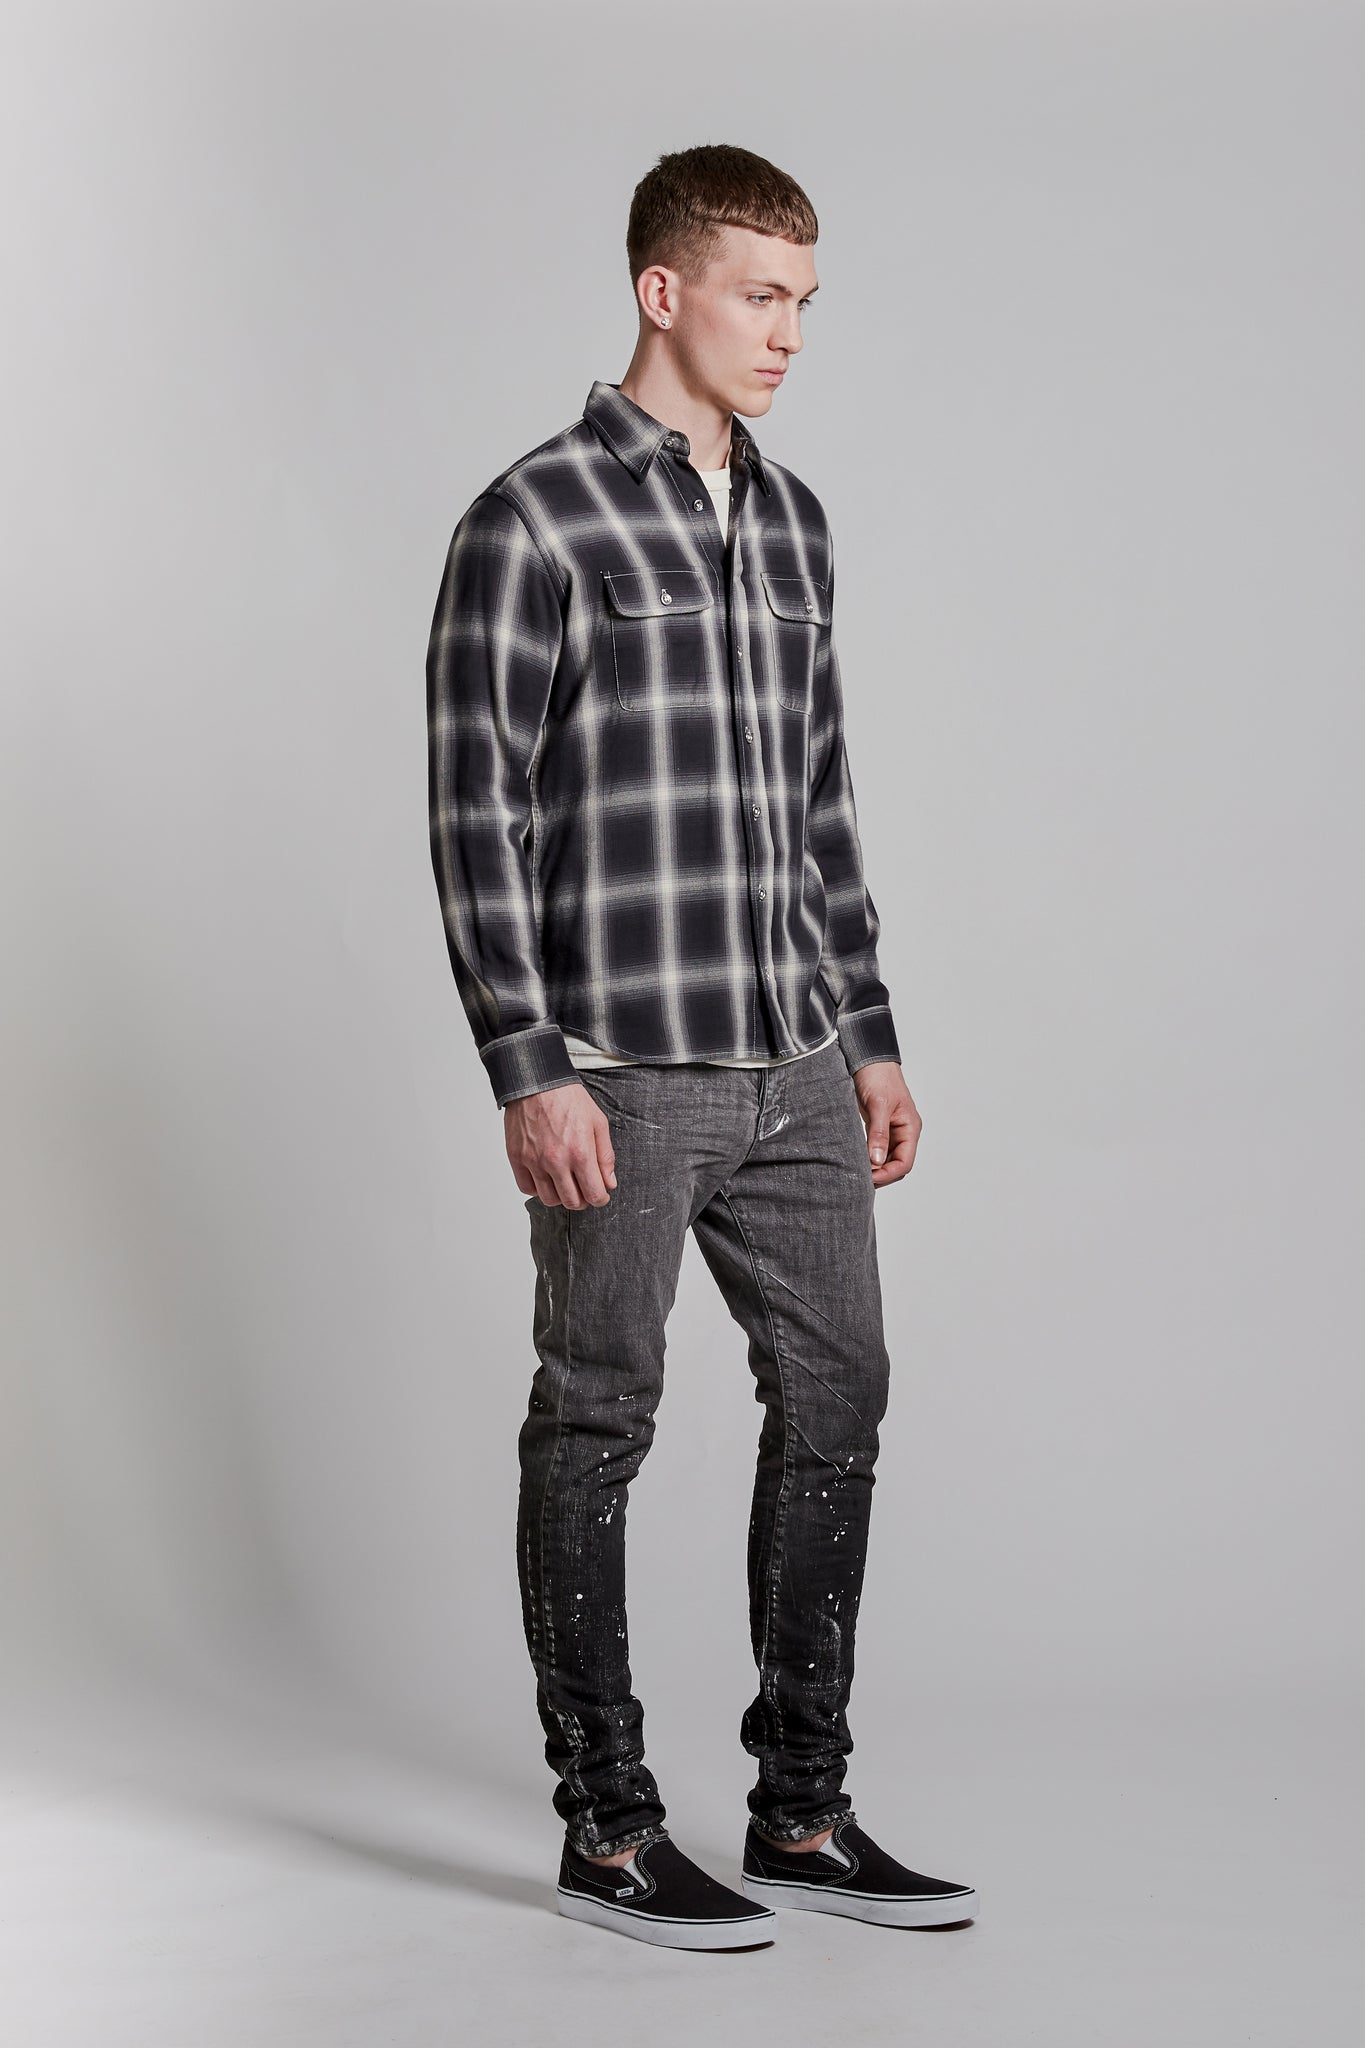 P303 RELAXED FIT - Reverse Flannel Black